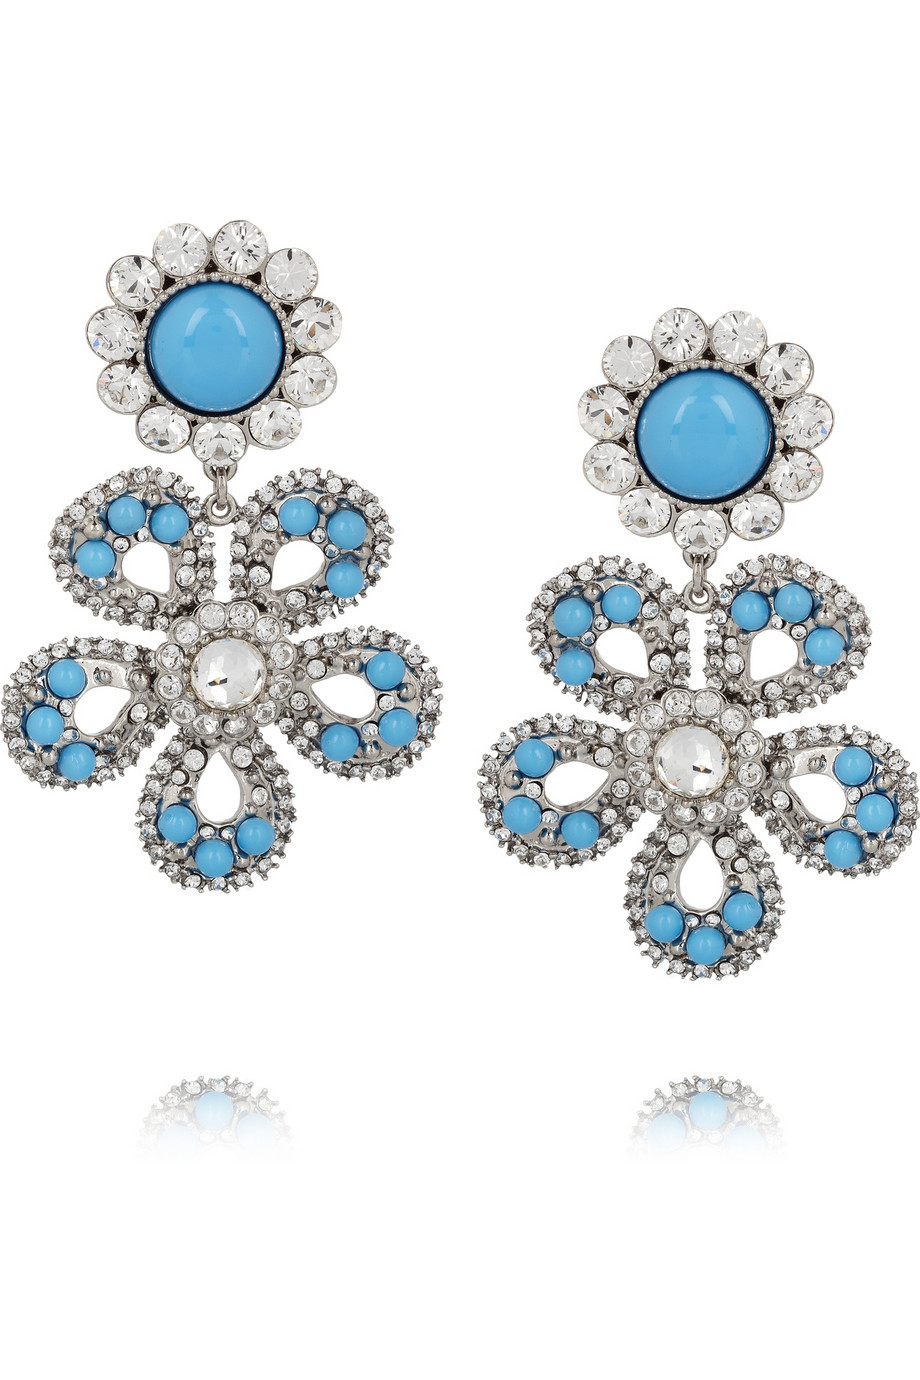 Miu Miu Bridal Earrings Something Blue